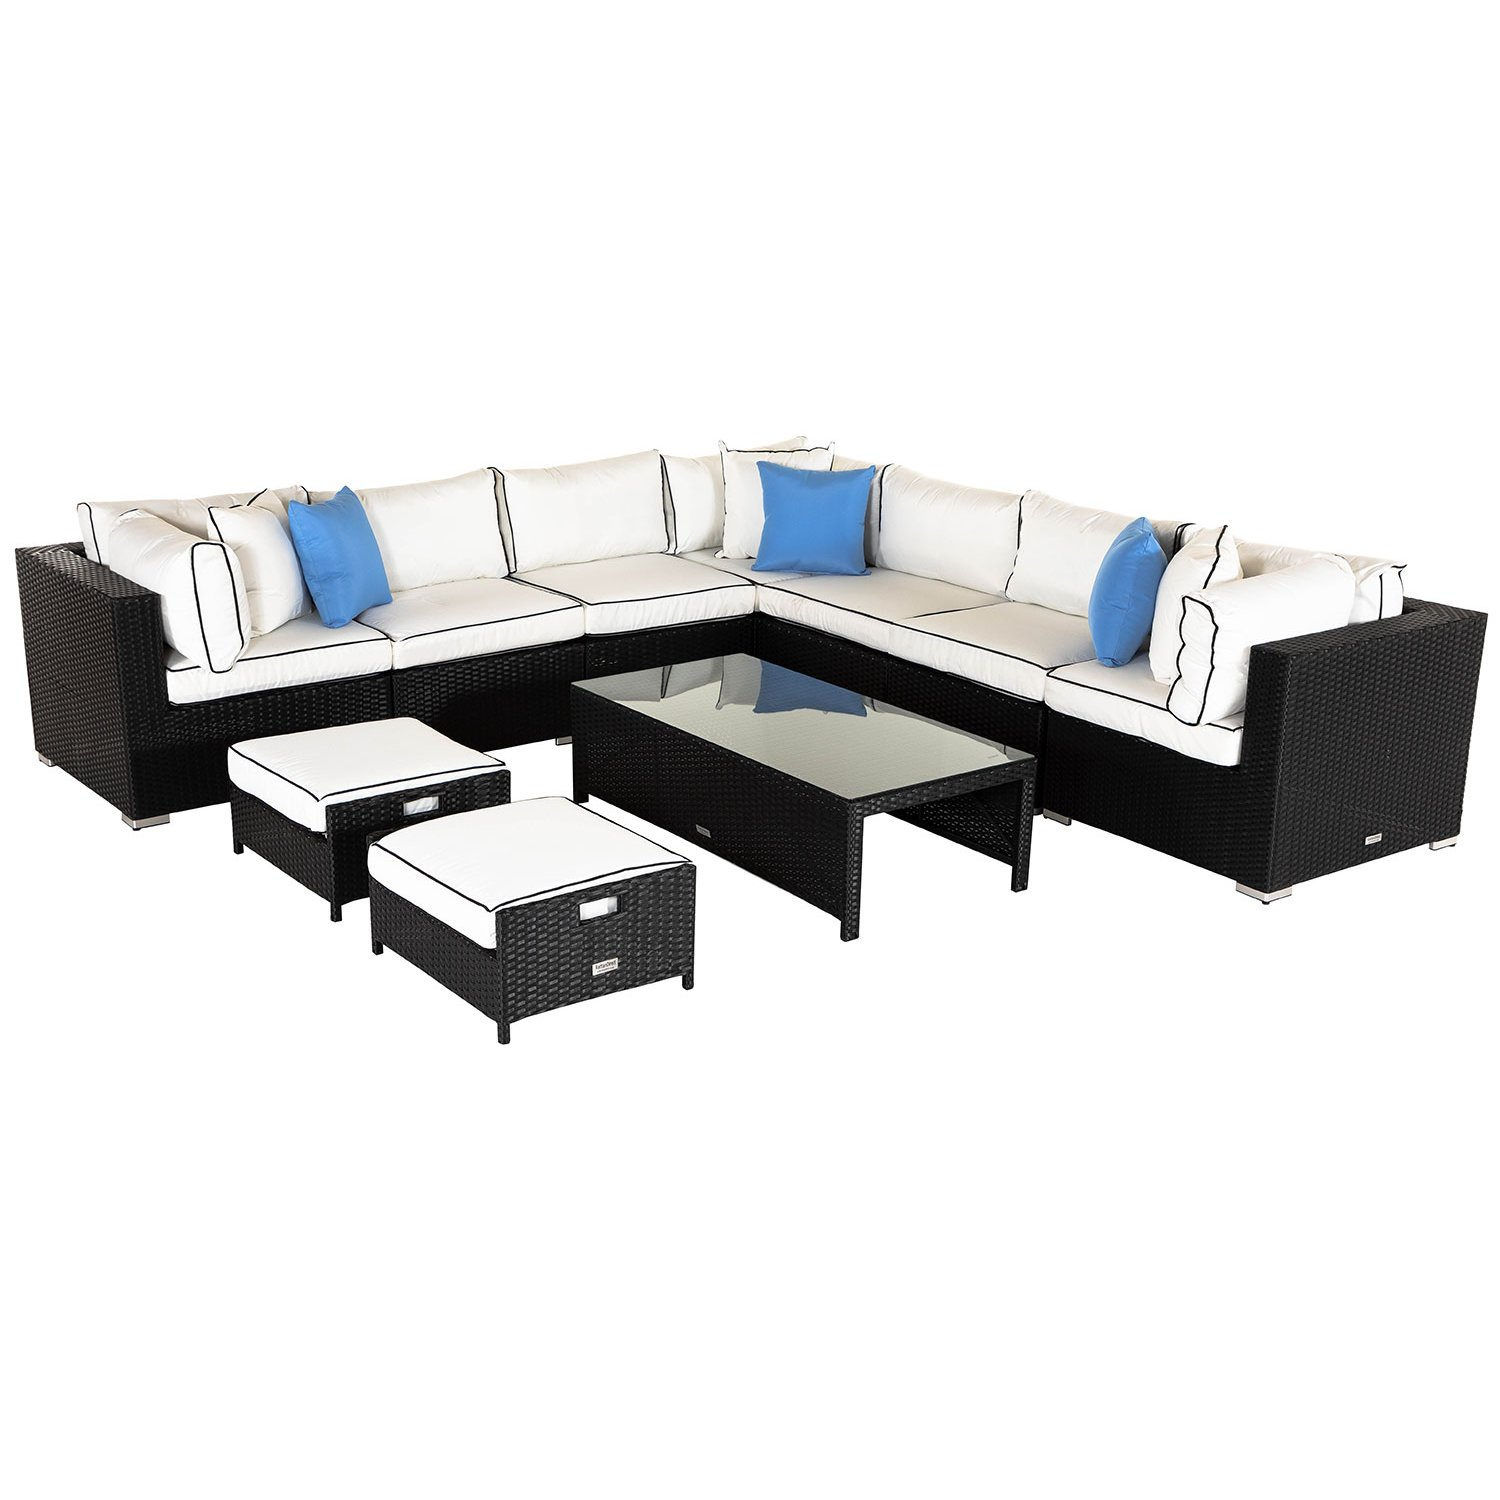 image-Geneva 6: Rattan Garden Corner Sofa Set in Black and Vanilla